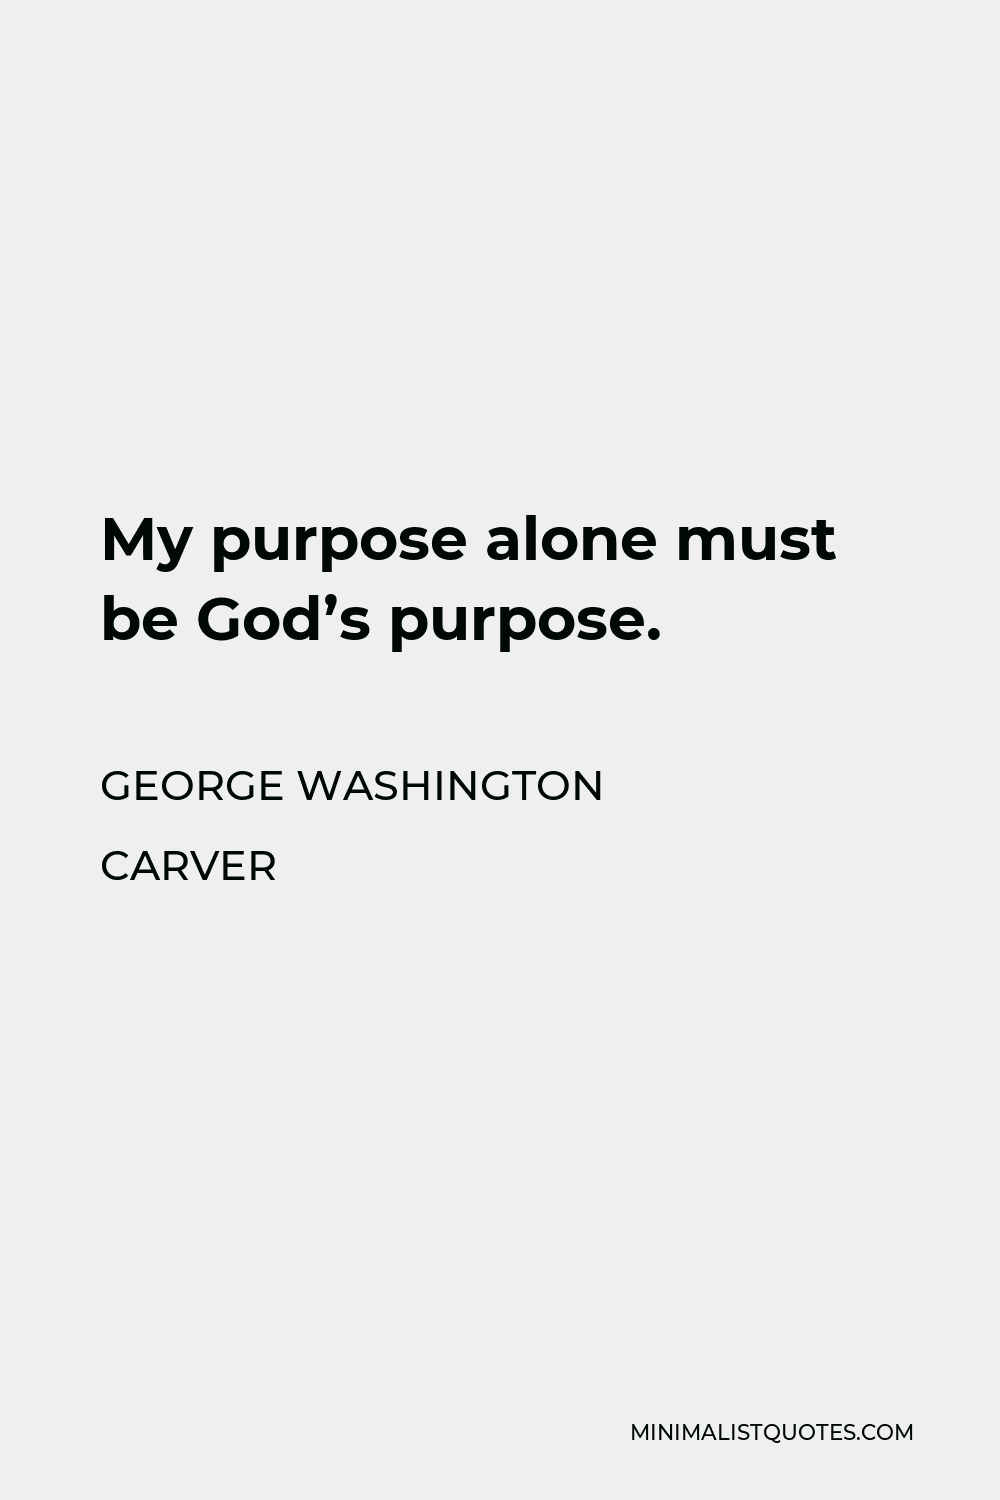 George Washington Carver Quote - My purpose alone must be God's purpose.